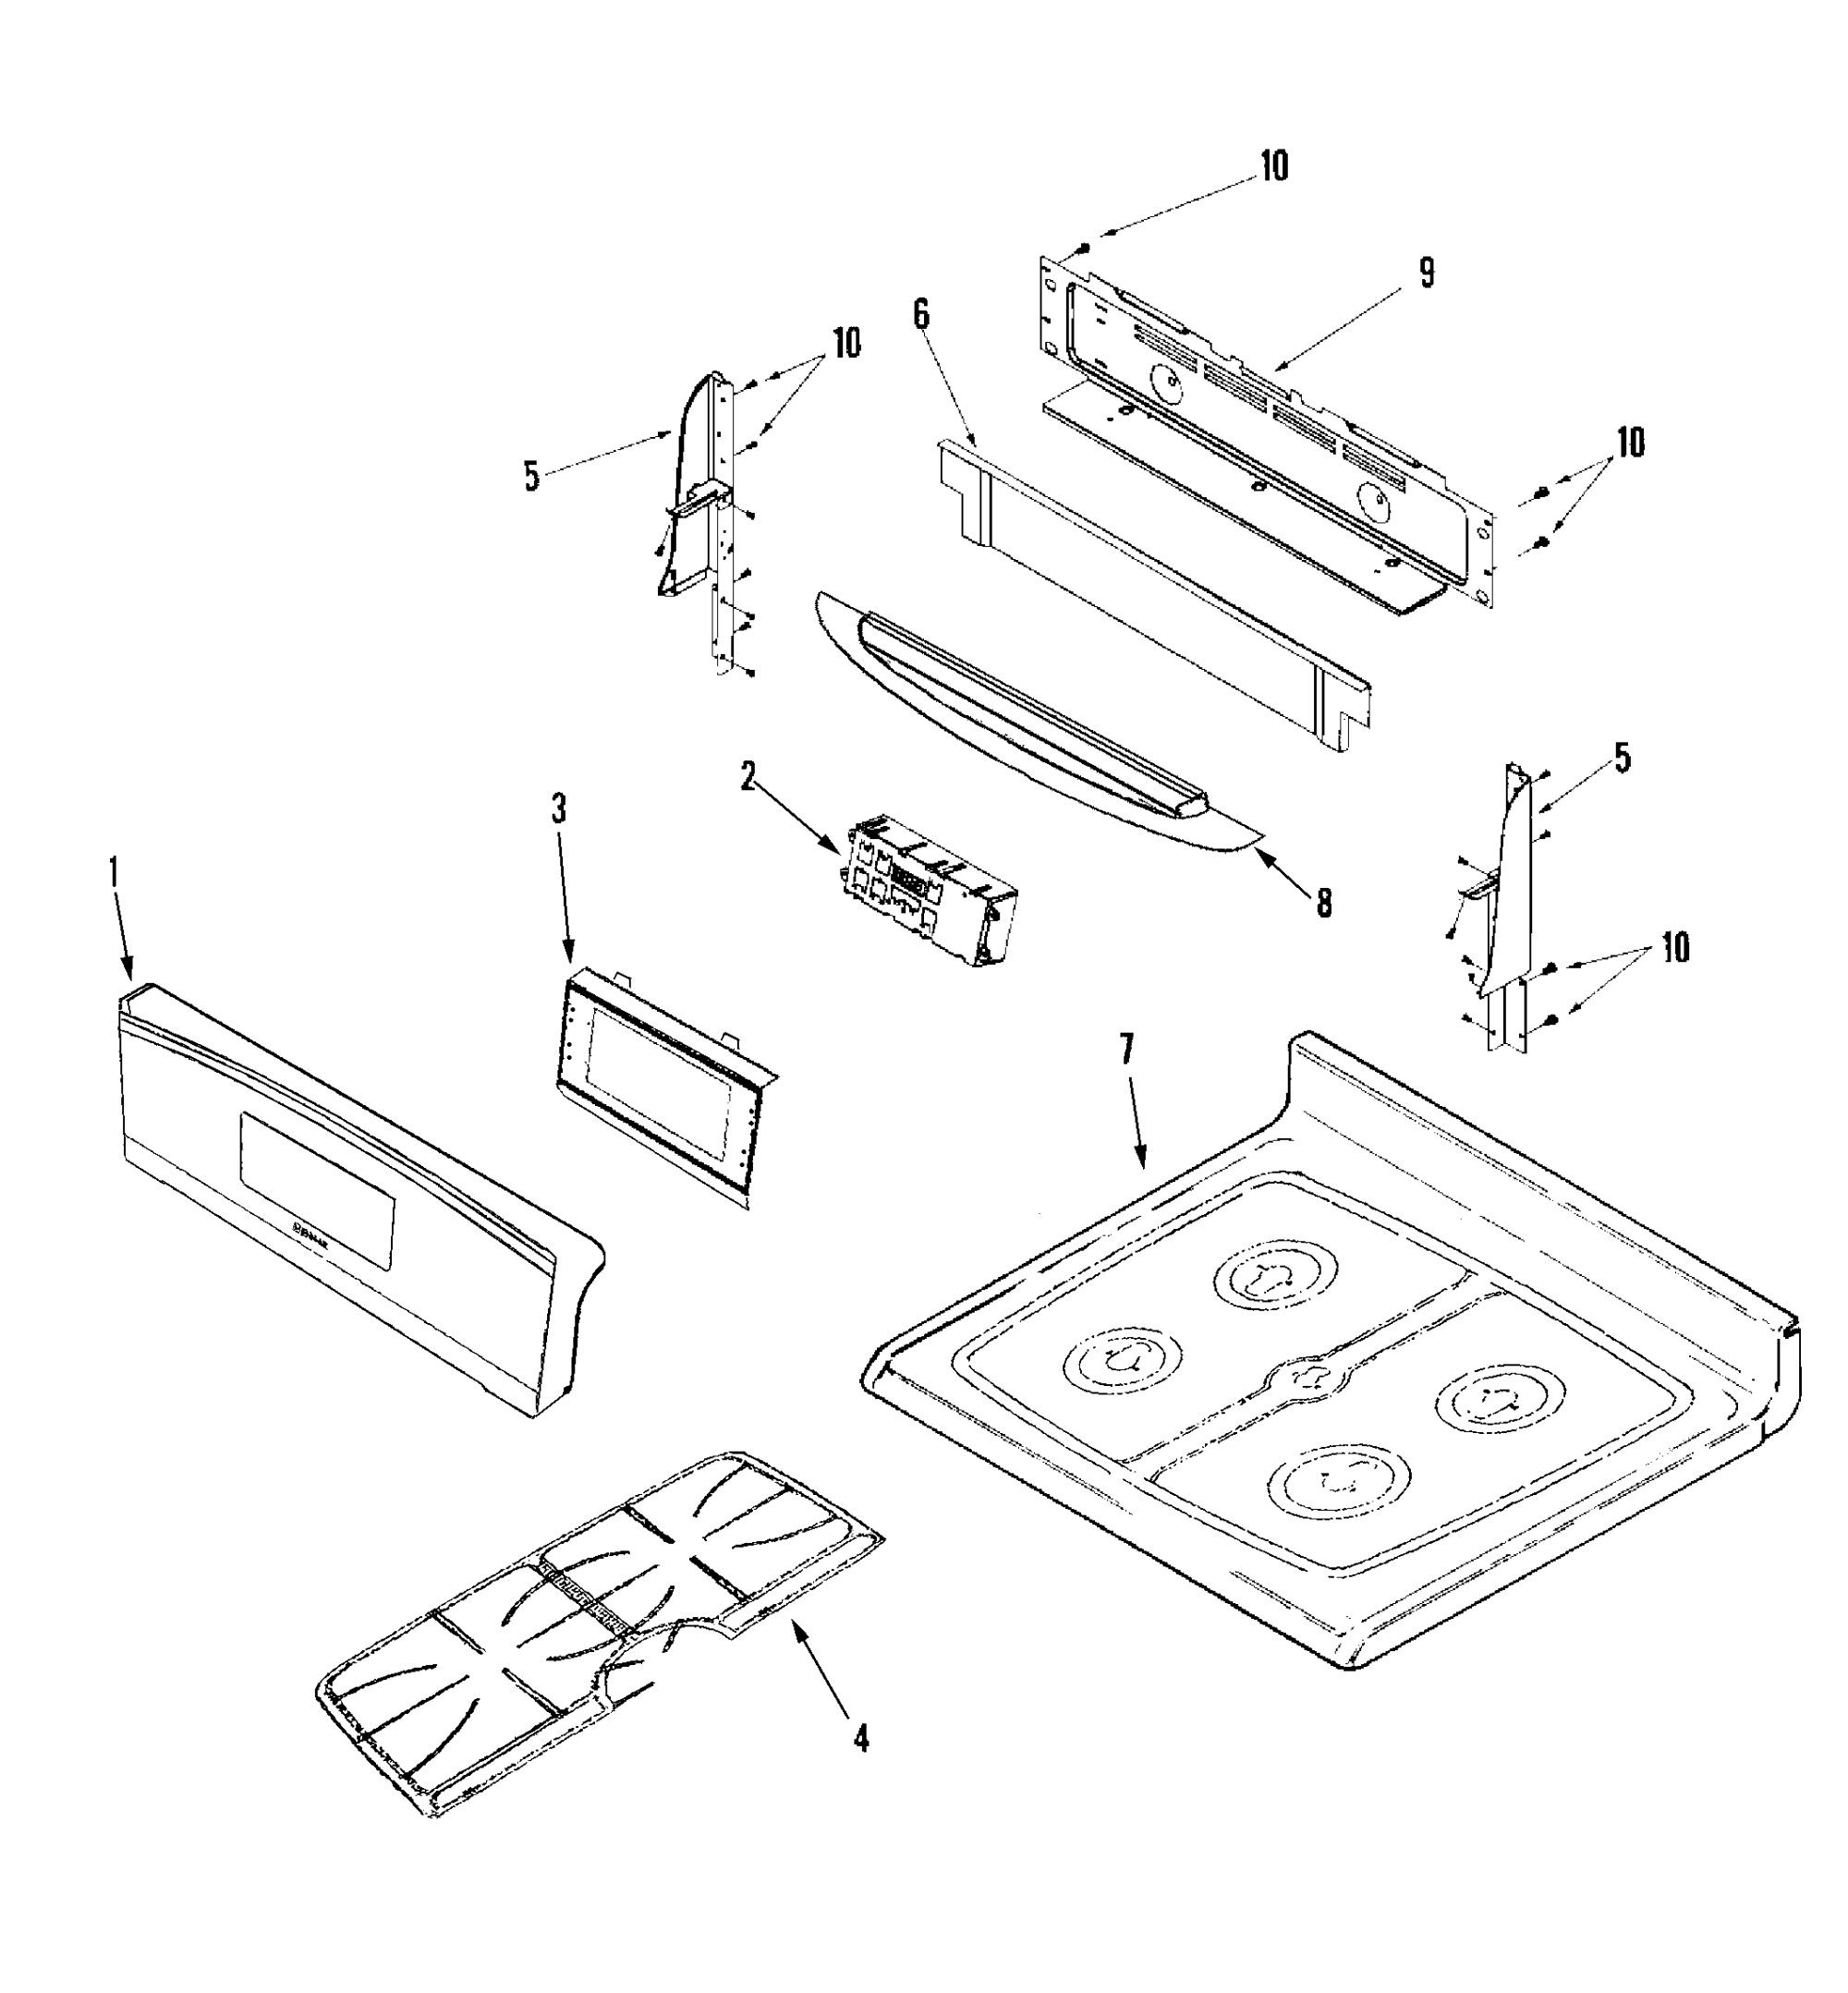 hight resolution of jenn air jgr8875qds control panel top assembly diagram